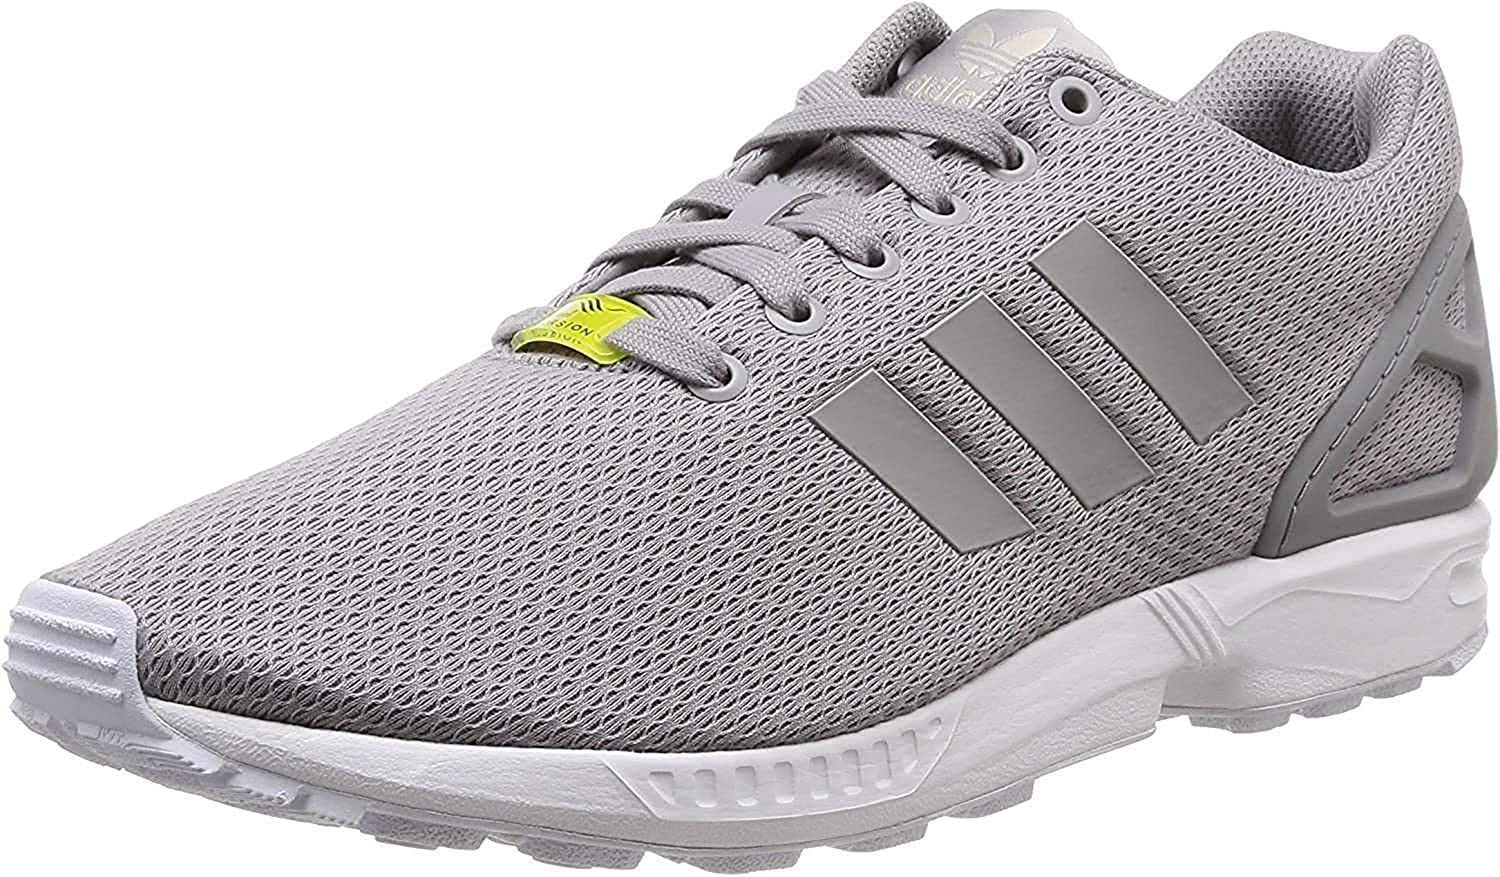 adidas ZX Flux, Unisex Adult's Trainers